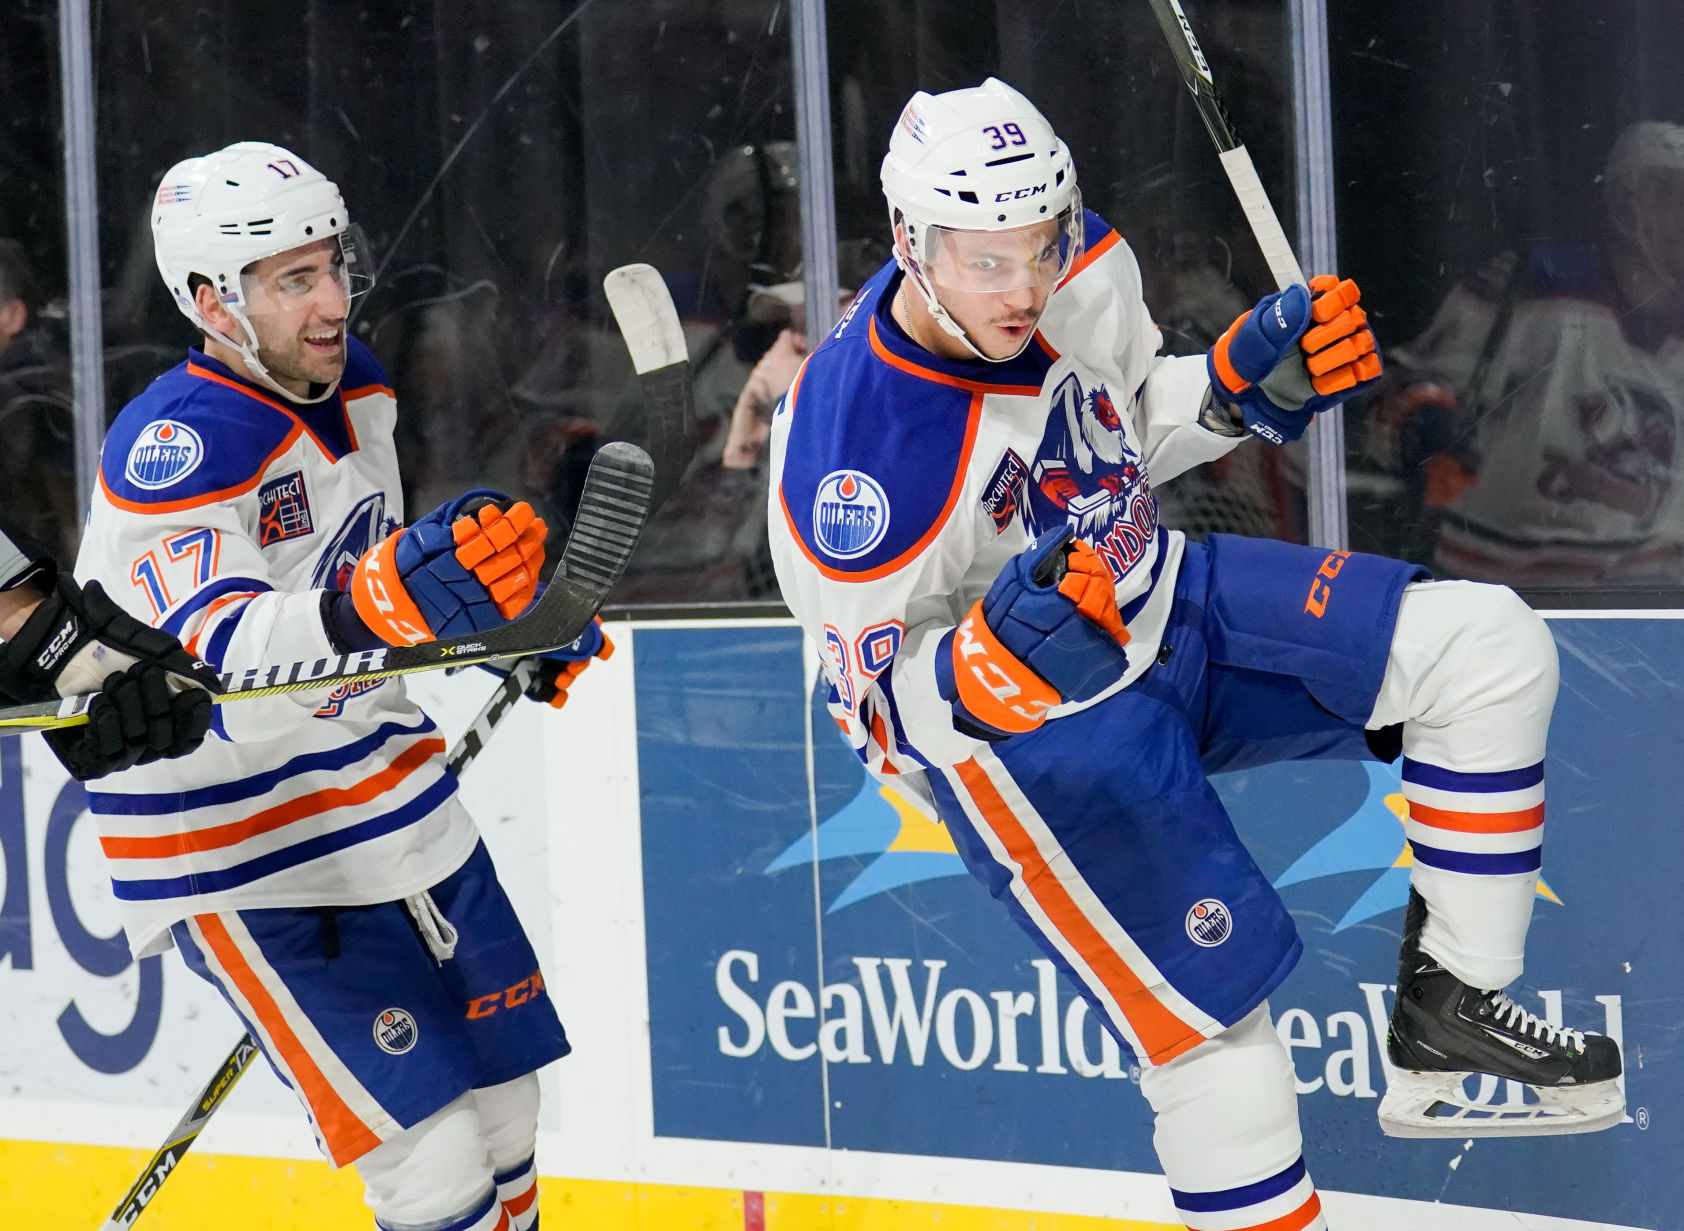 AHL: Two Straight Wins Have Condors At .500 And Looking For Better Times | Sports